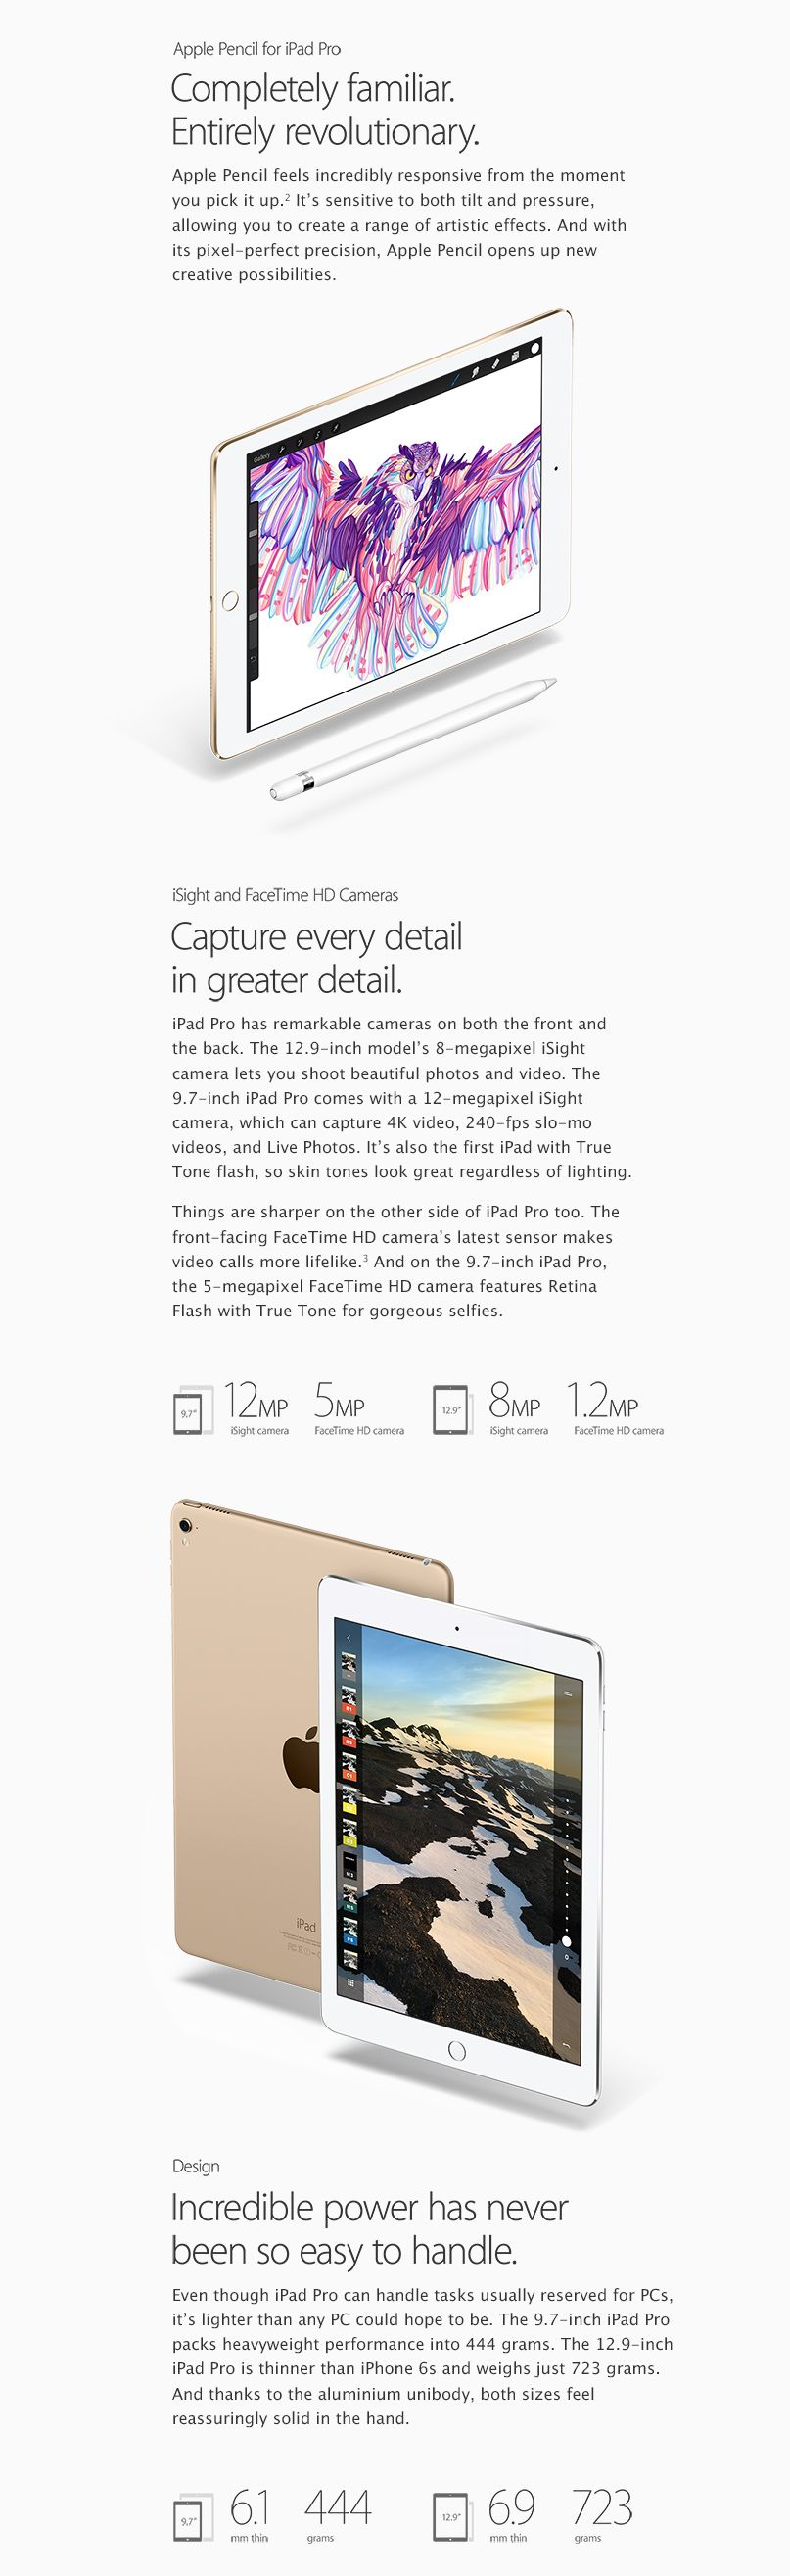 Find out more about the new iPad 2017 John Lewis